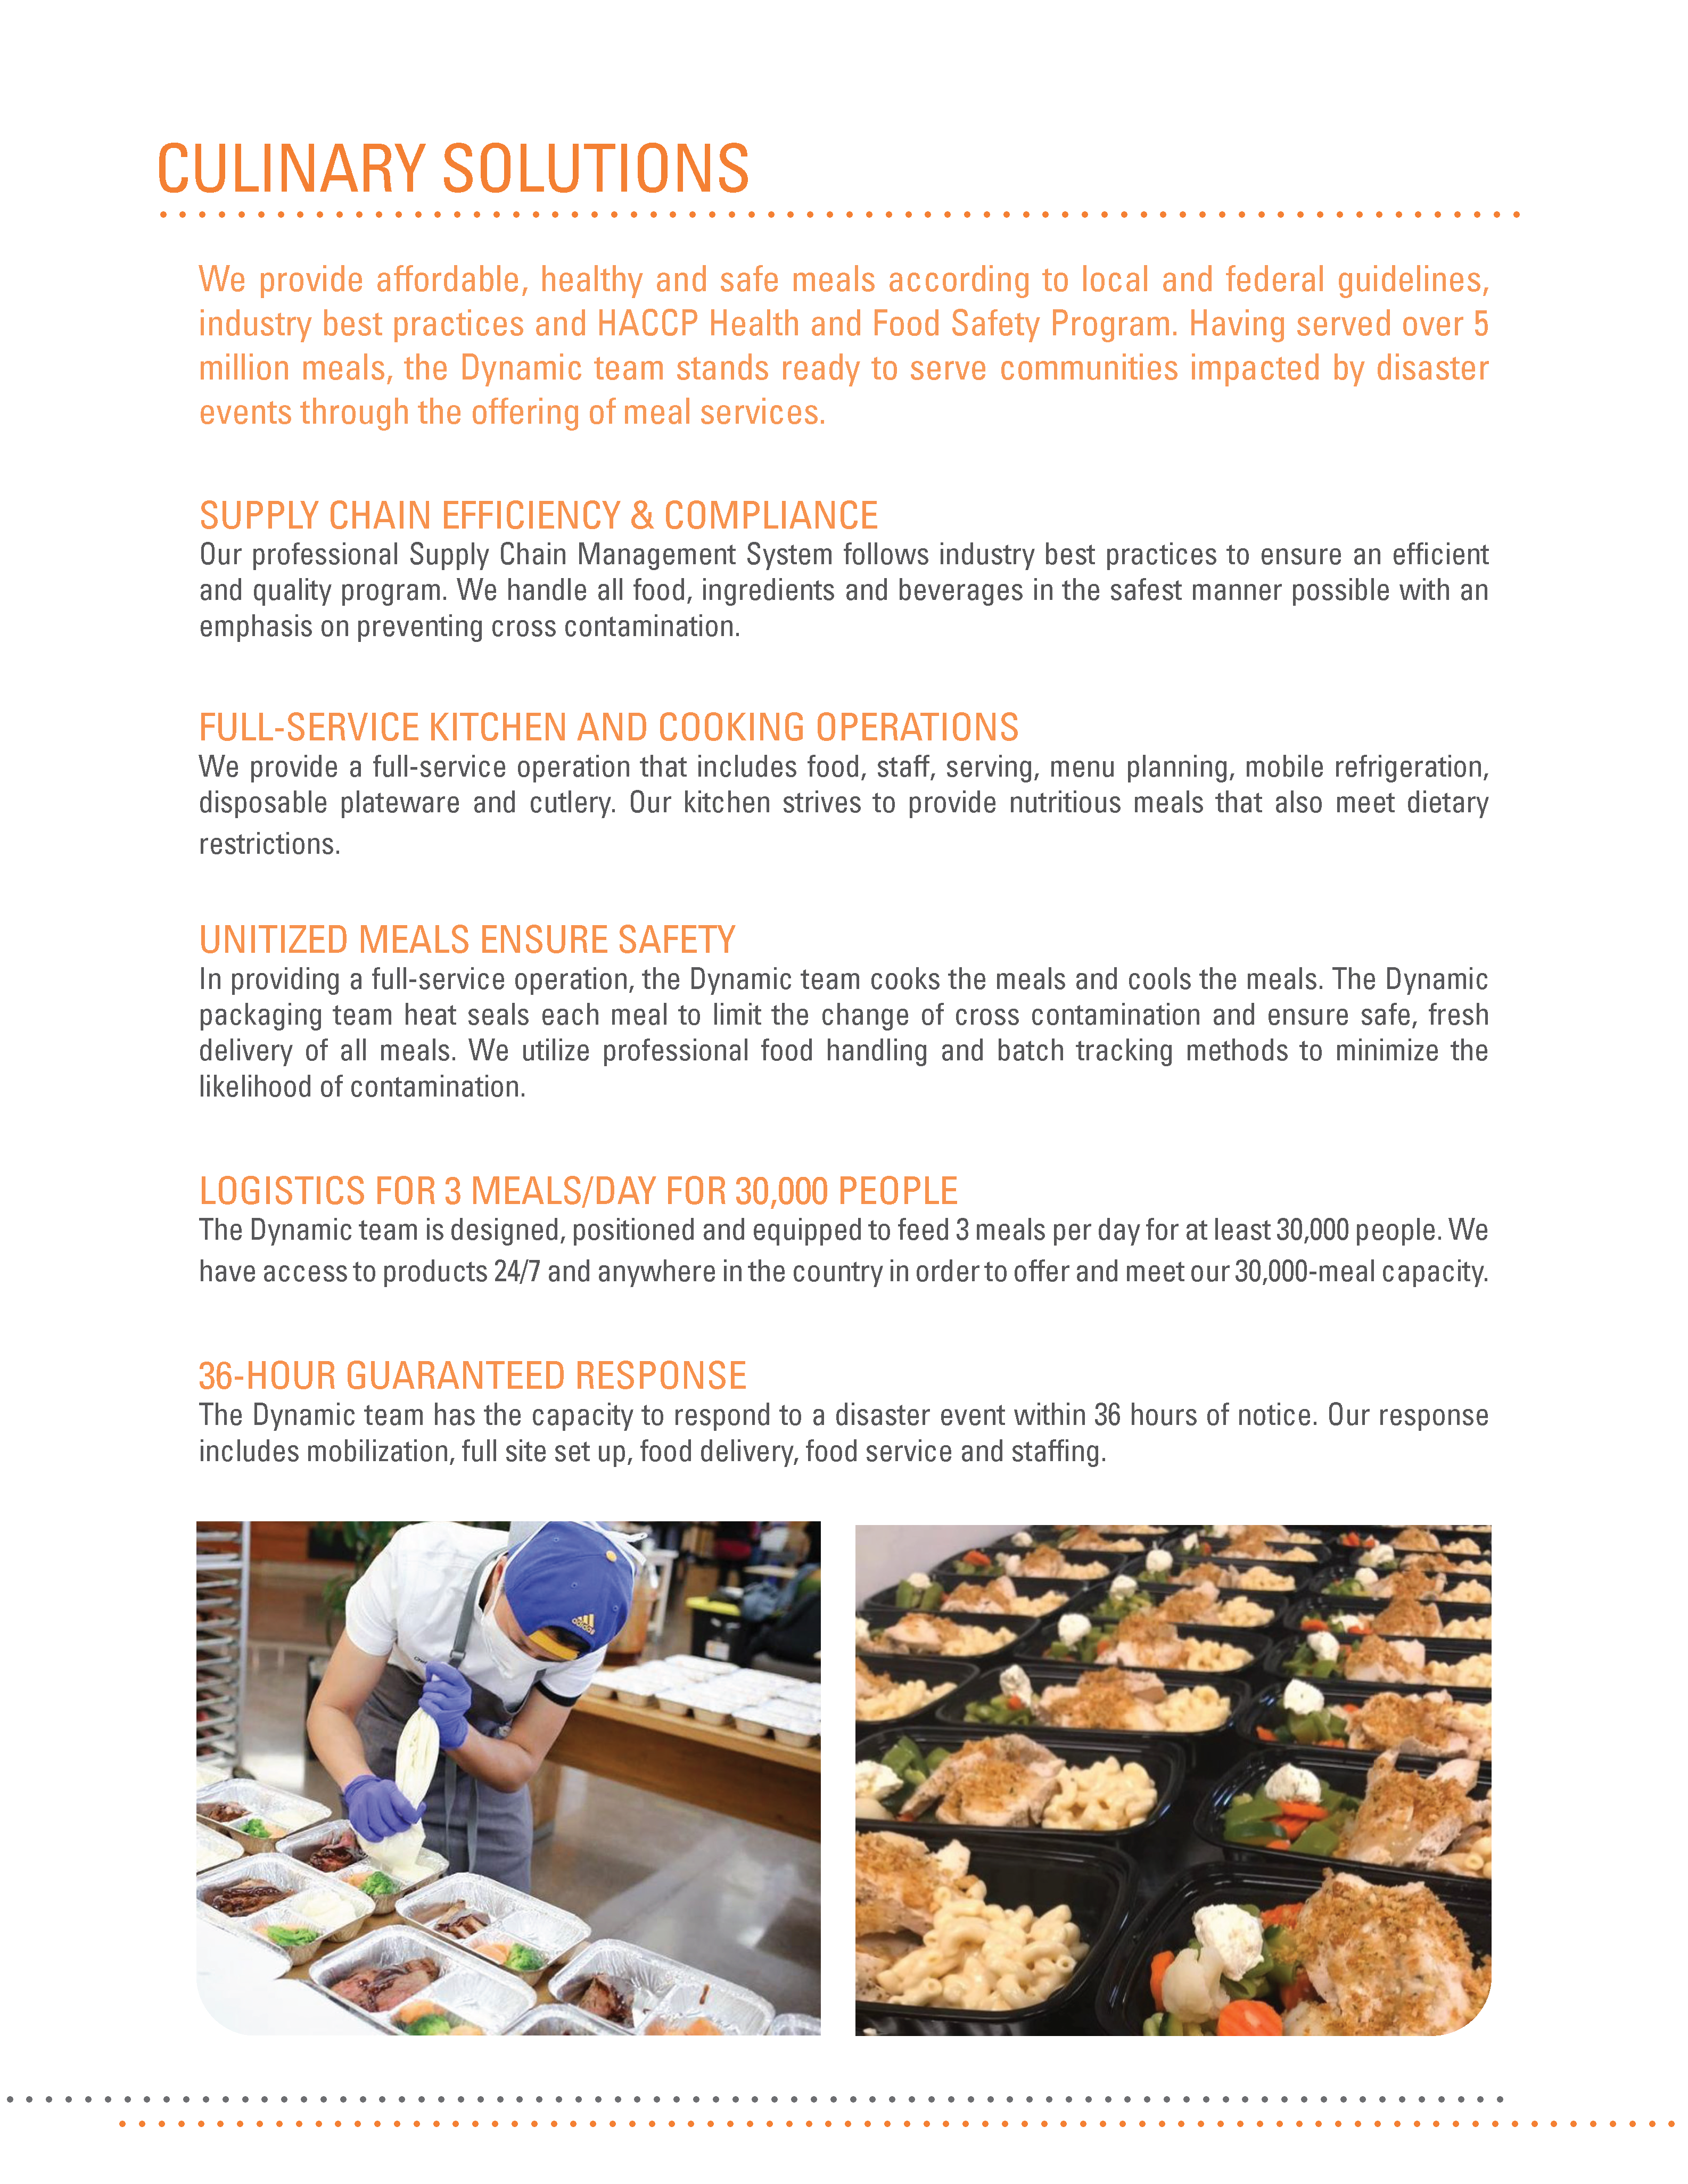 Dynamic Restoration Services can provide emergency meals and other culinary solutions